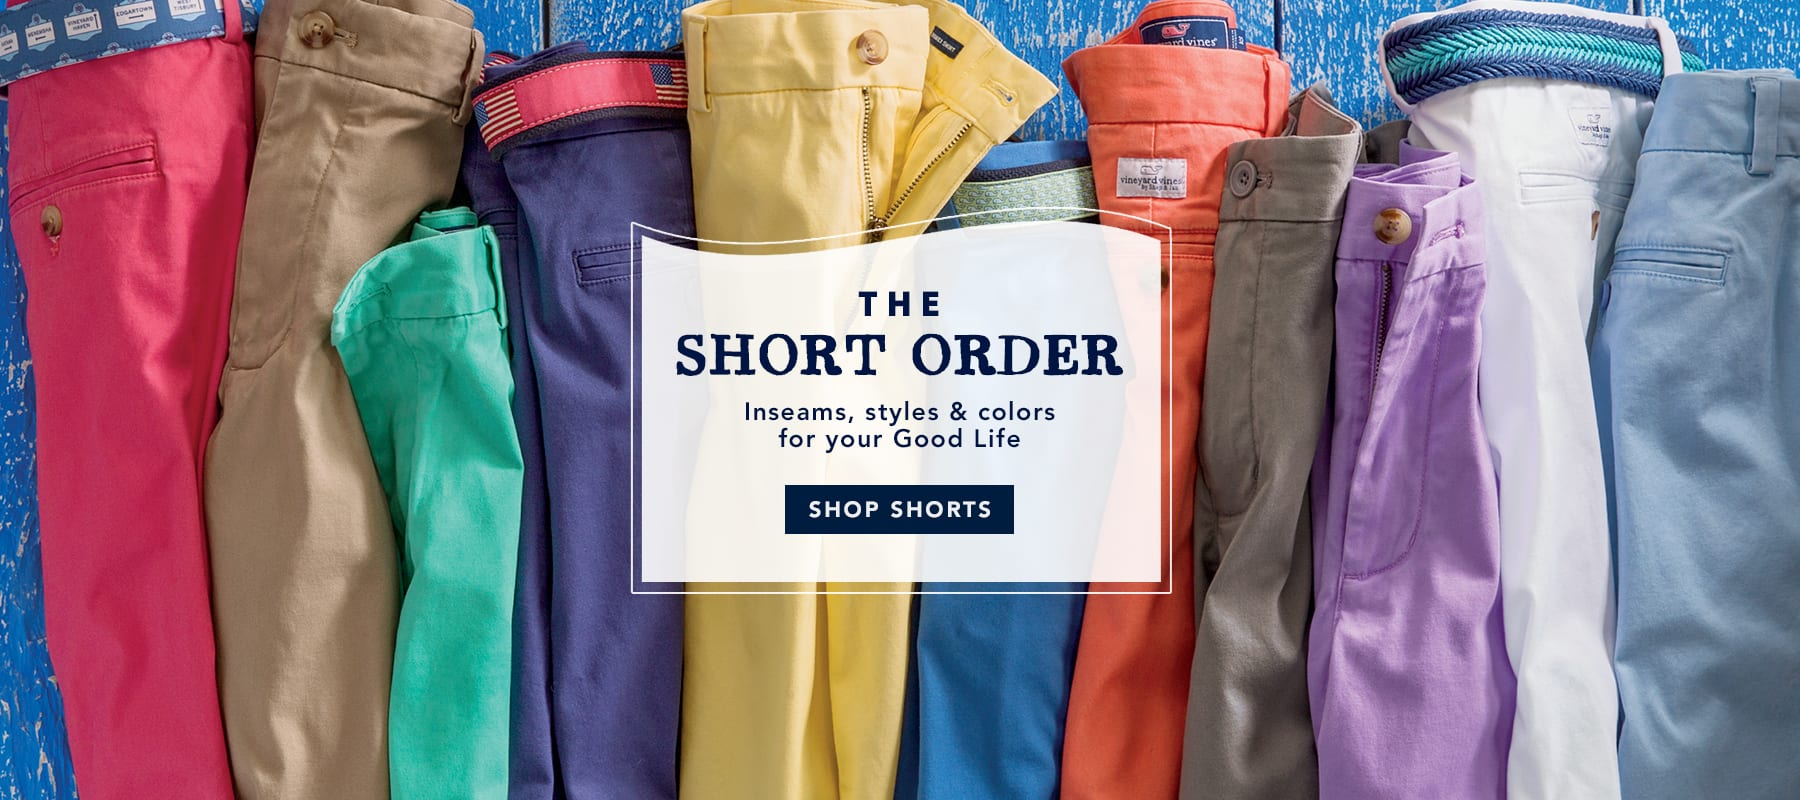 The short order. Inseams, styles & colors for your Good Life. Shop shorts.